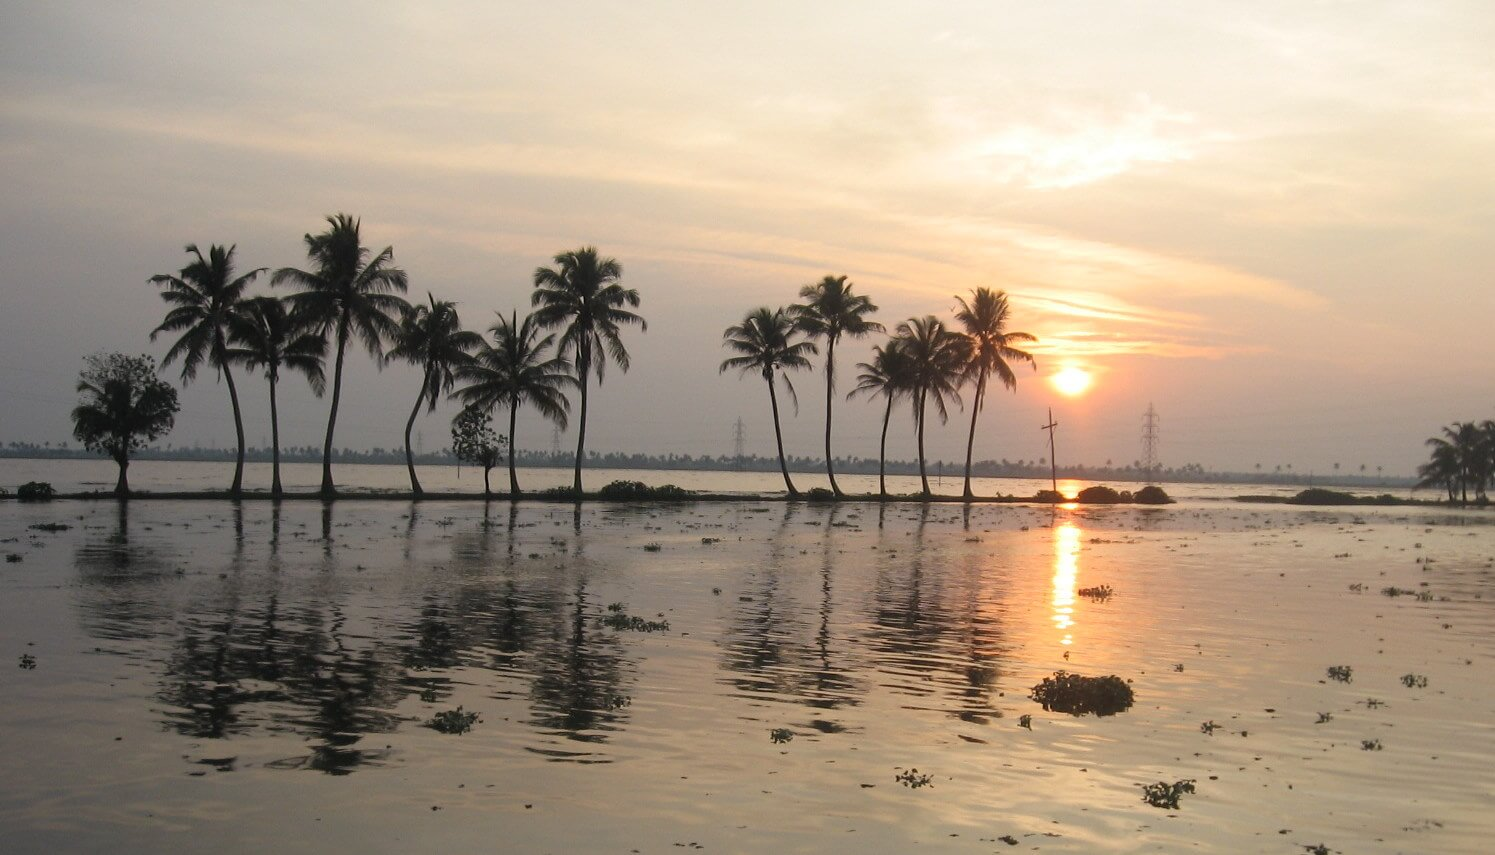 Alappuzha - Backwaters of Kerala